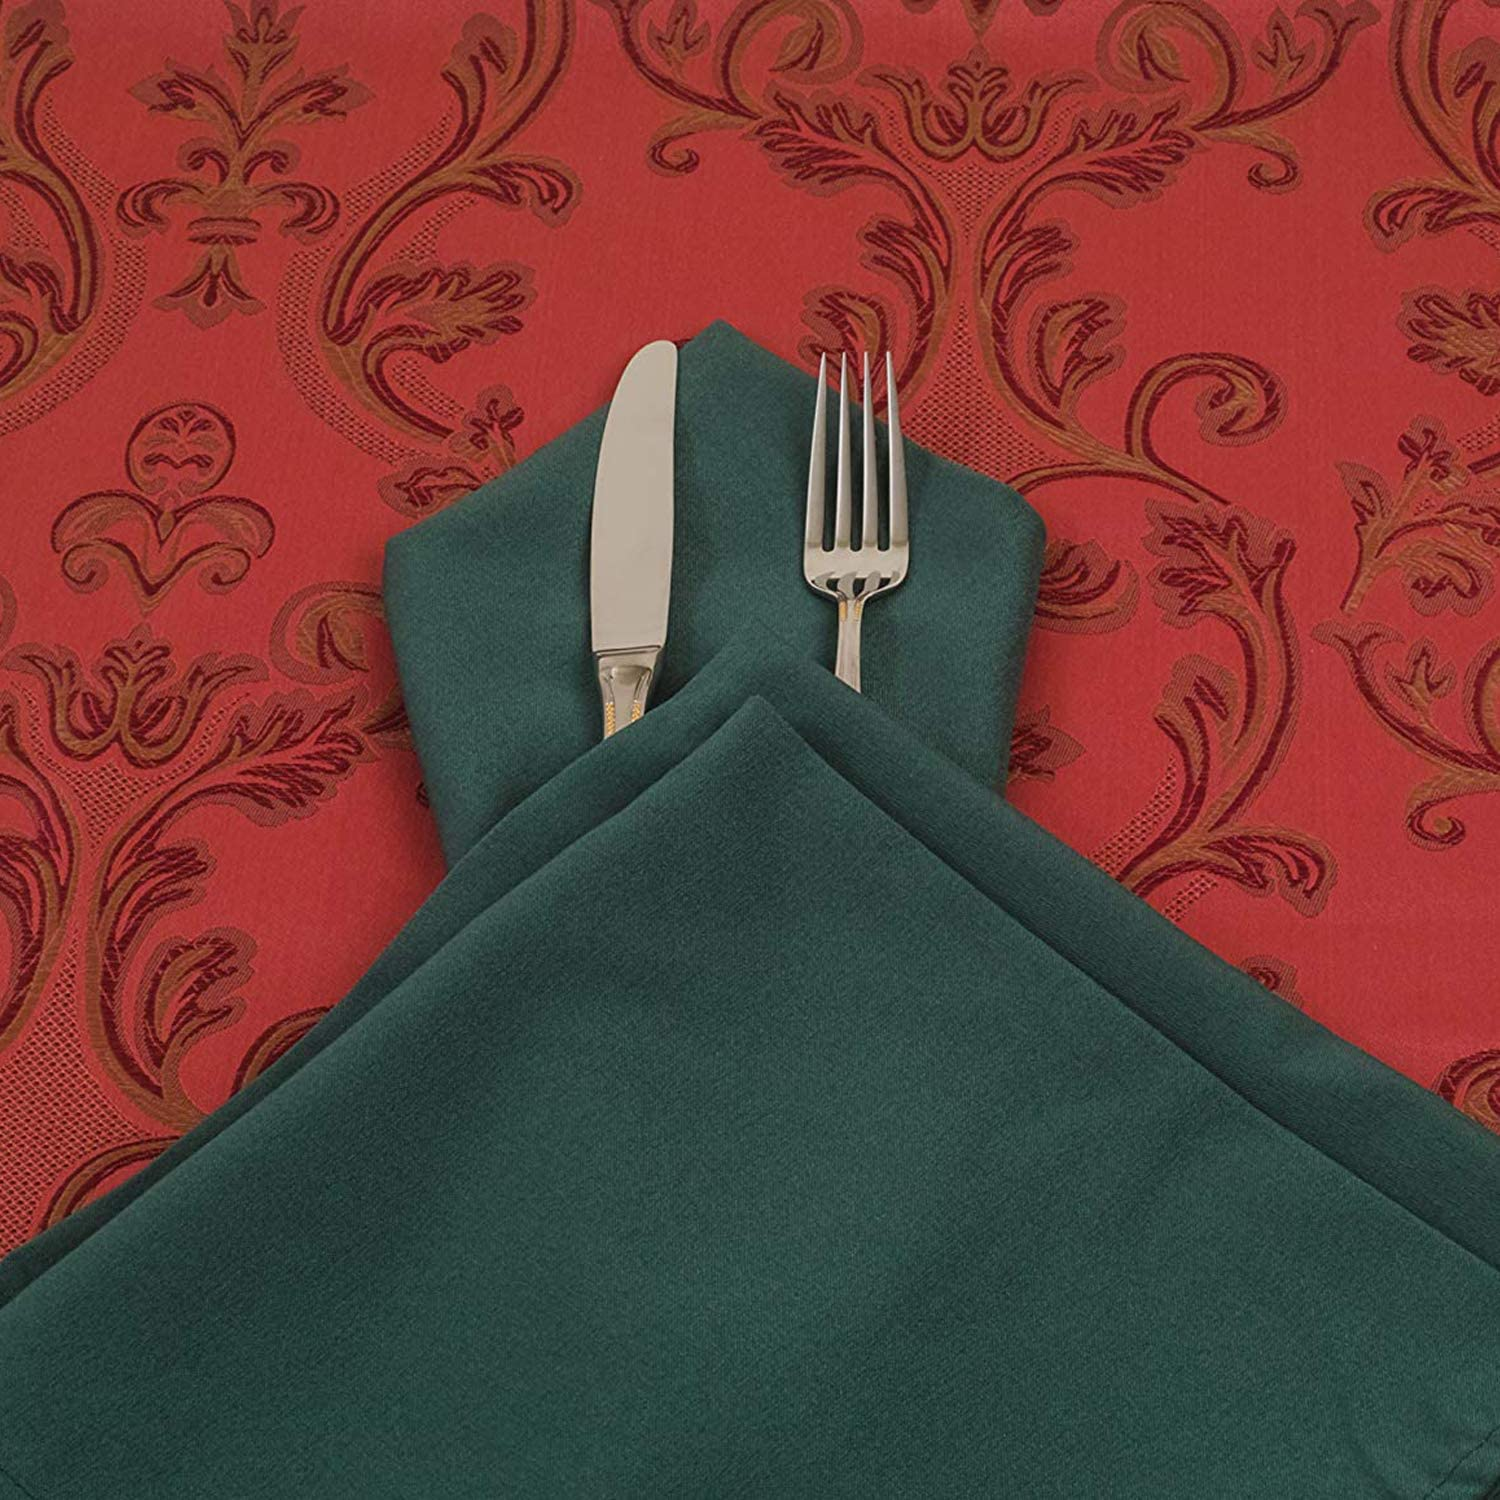 Hemmed Edges Home Lightweight Machine Washable Dinning Banquet Weddecor 20 Inch Spun Polyester Table Napkin for Wedding Hotel Party 1 Piece Green